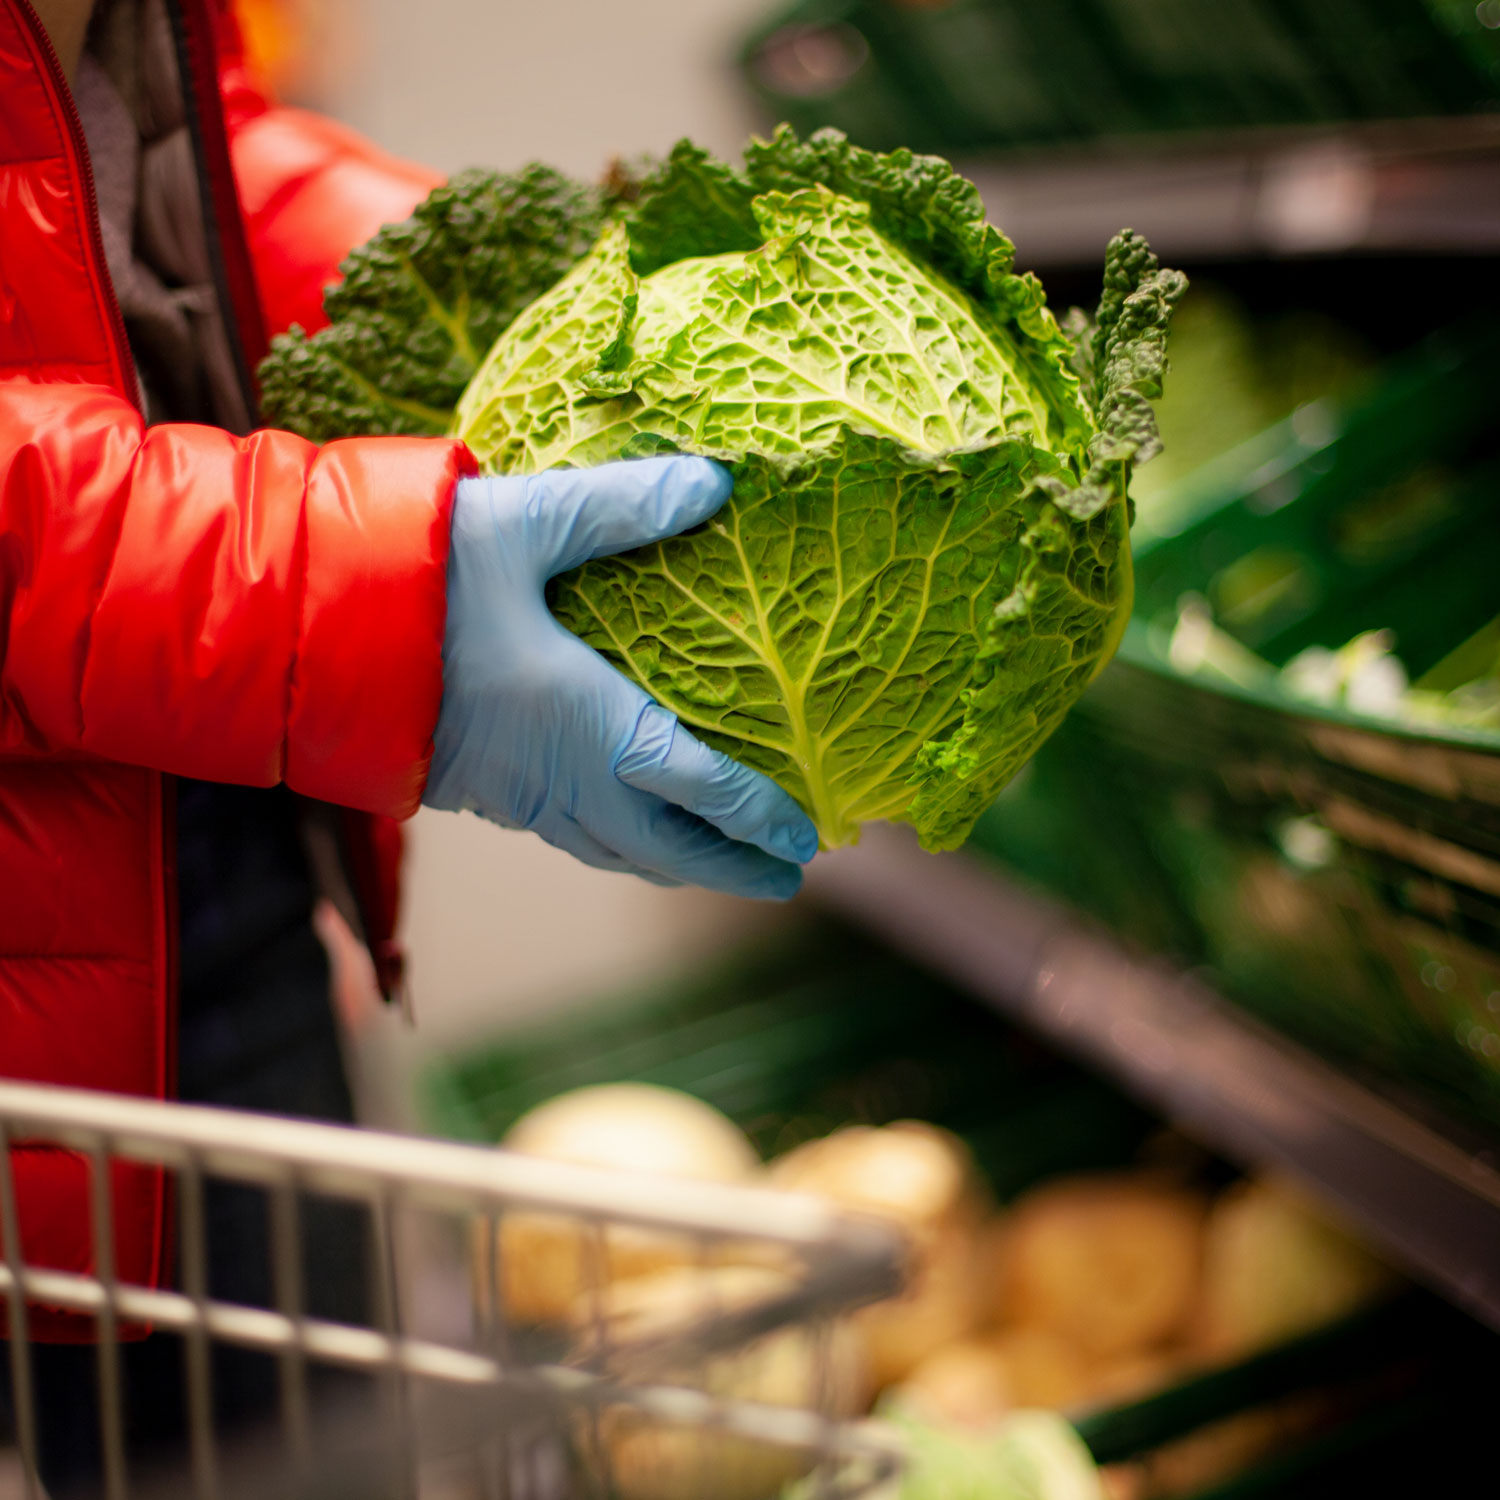 wearing gloves at grocery store holding cabbage coronavirus